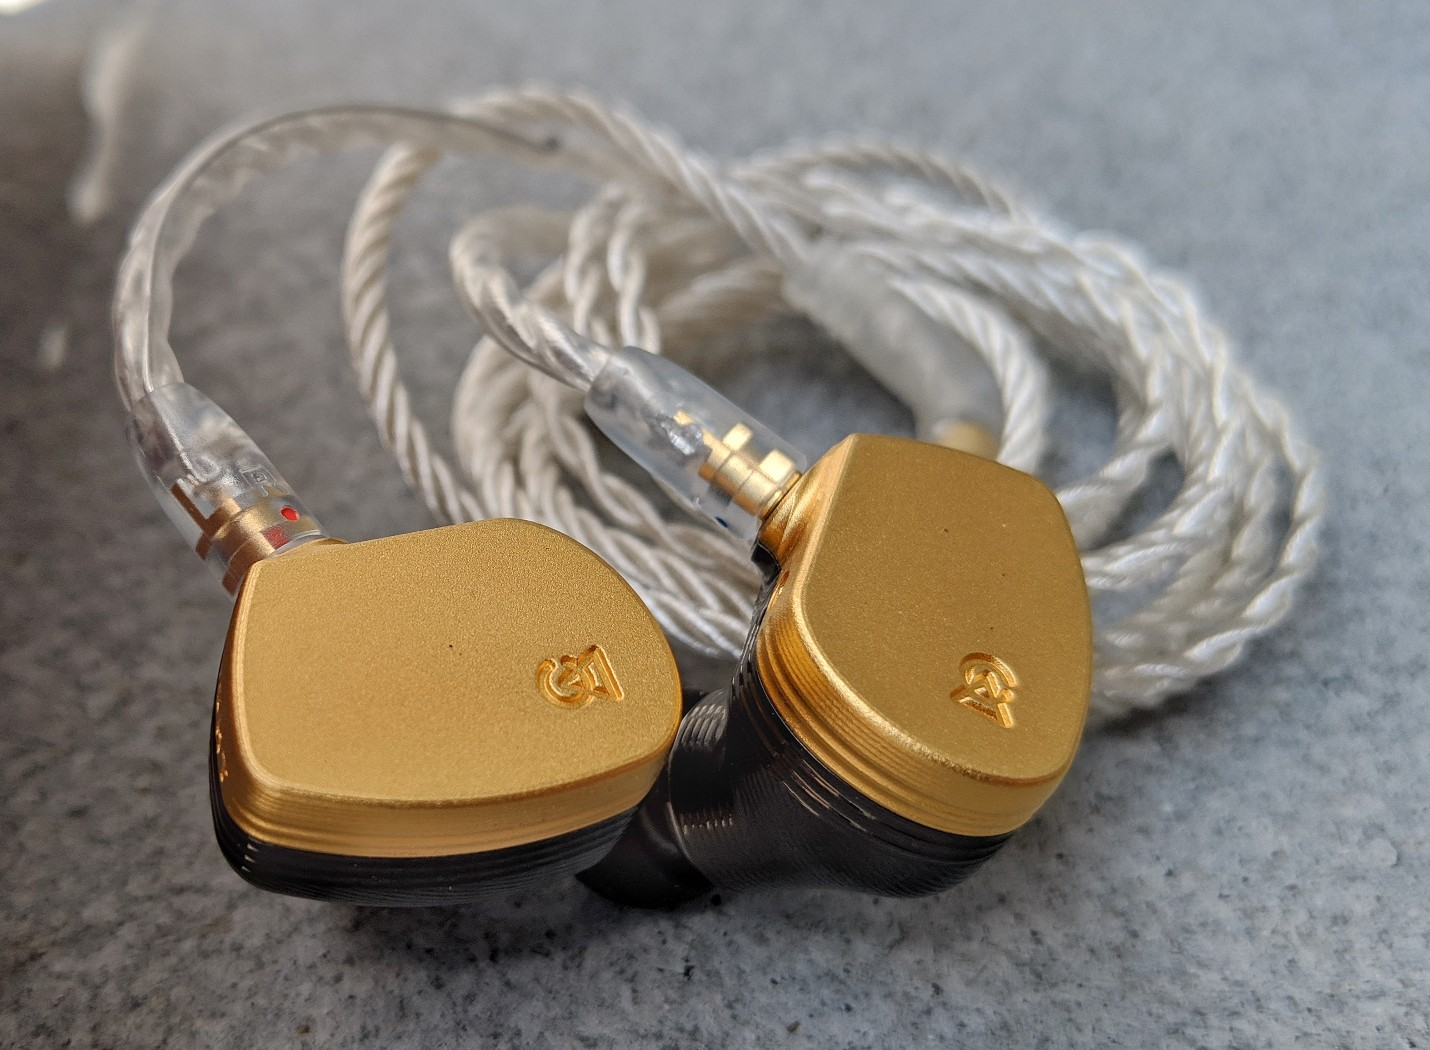 Campfire Audio Solaris Earphones tested and reviewed with comparisons to Shure SE846, Andromeda and Westone W80